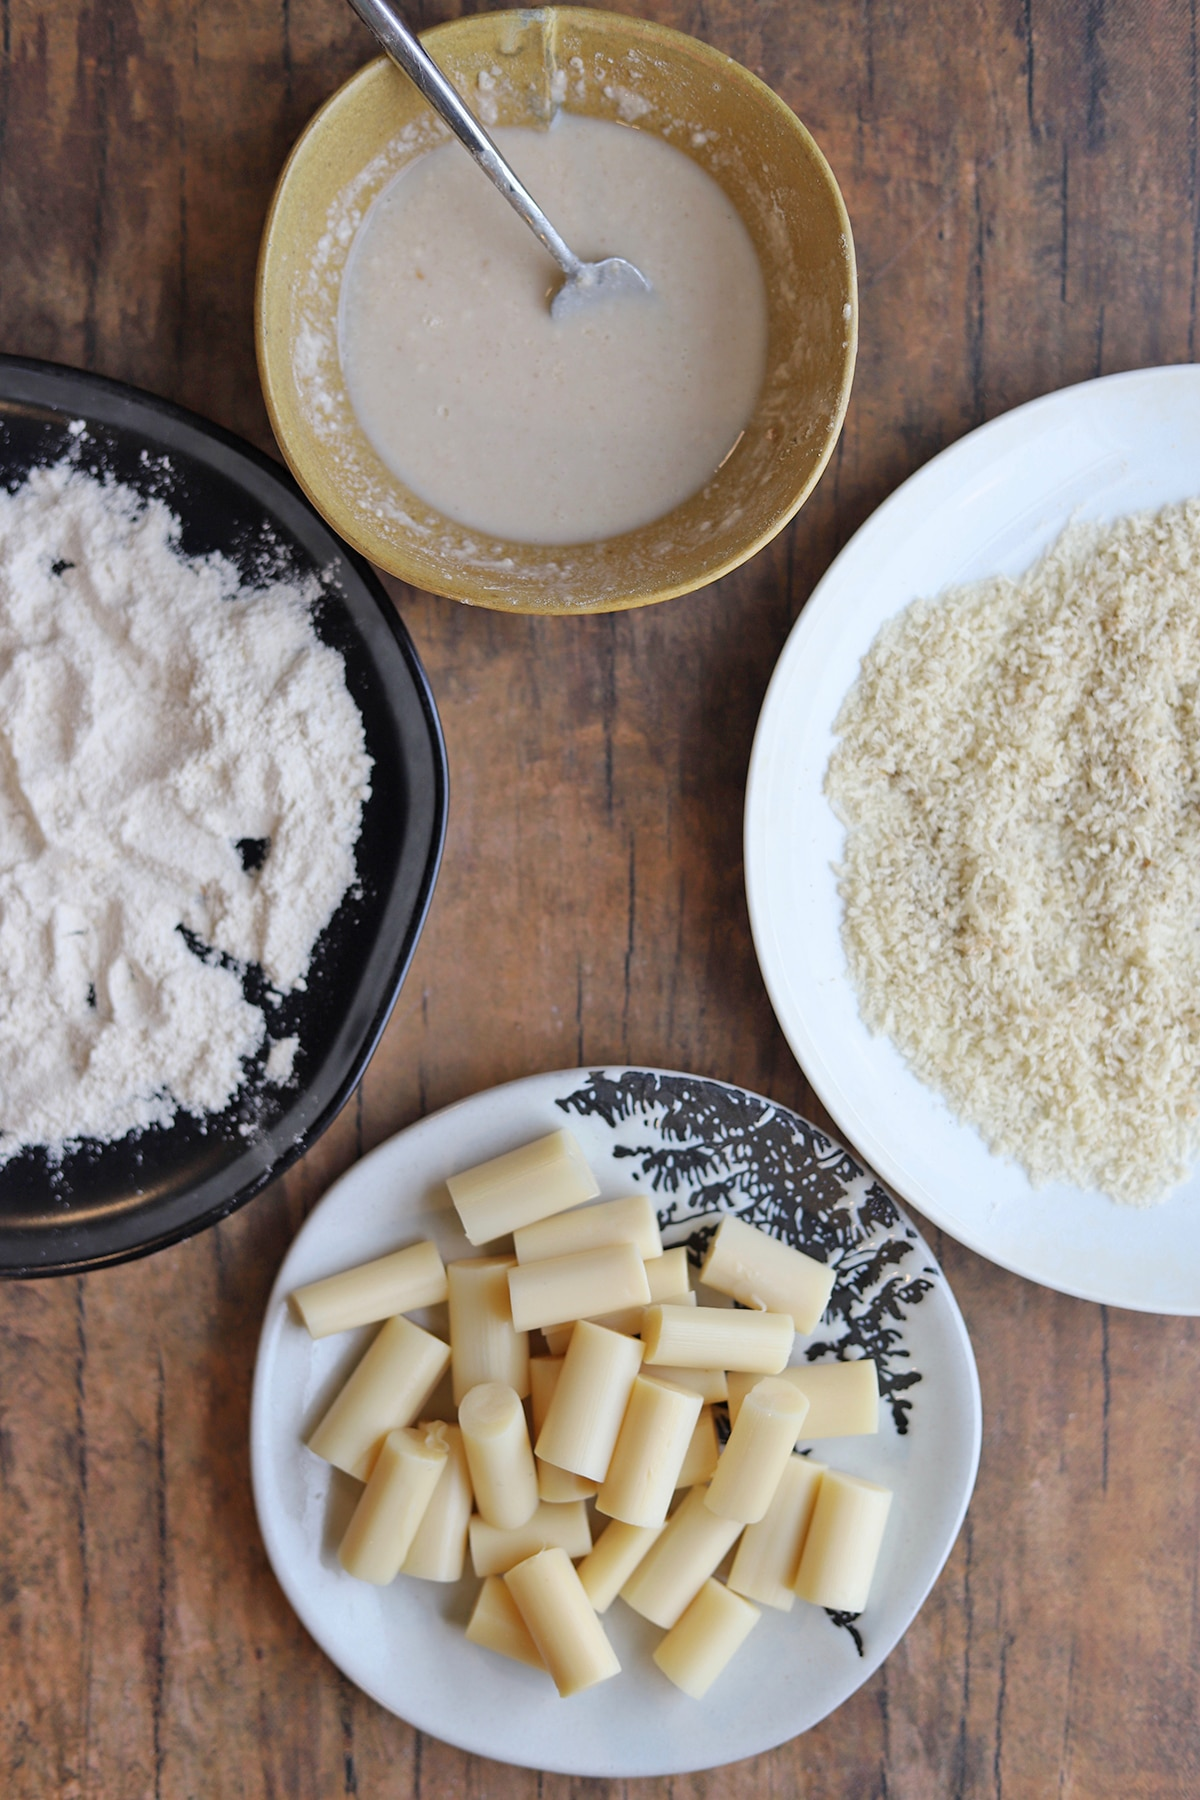 Breading station with hearts of palm, breadcrumbs, non-dairy milk, and flour.